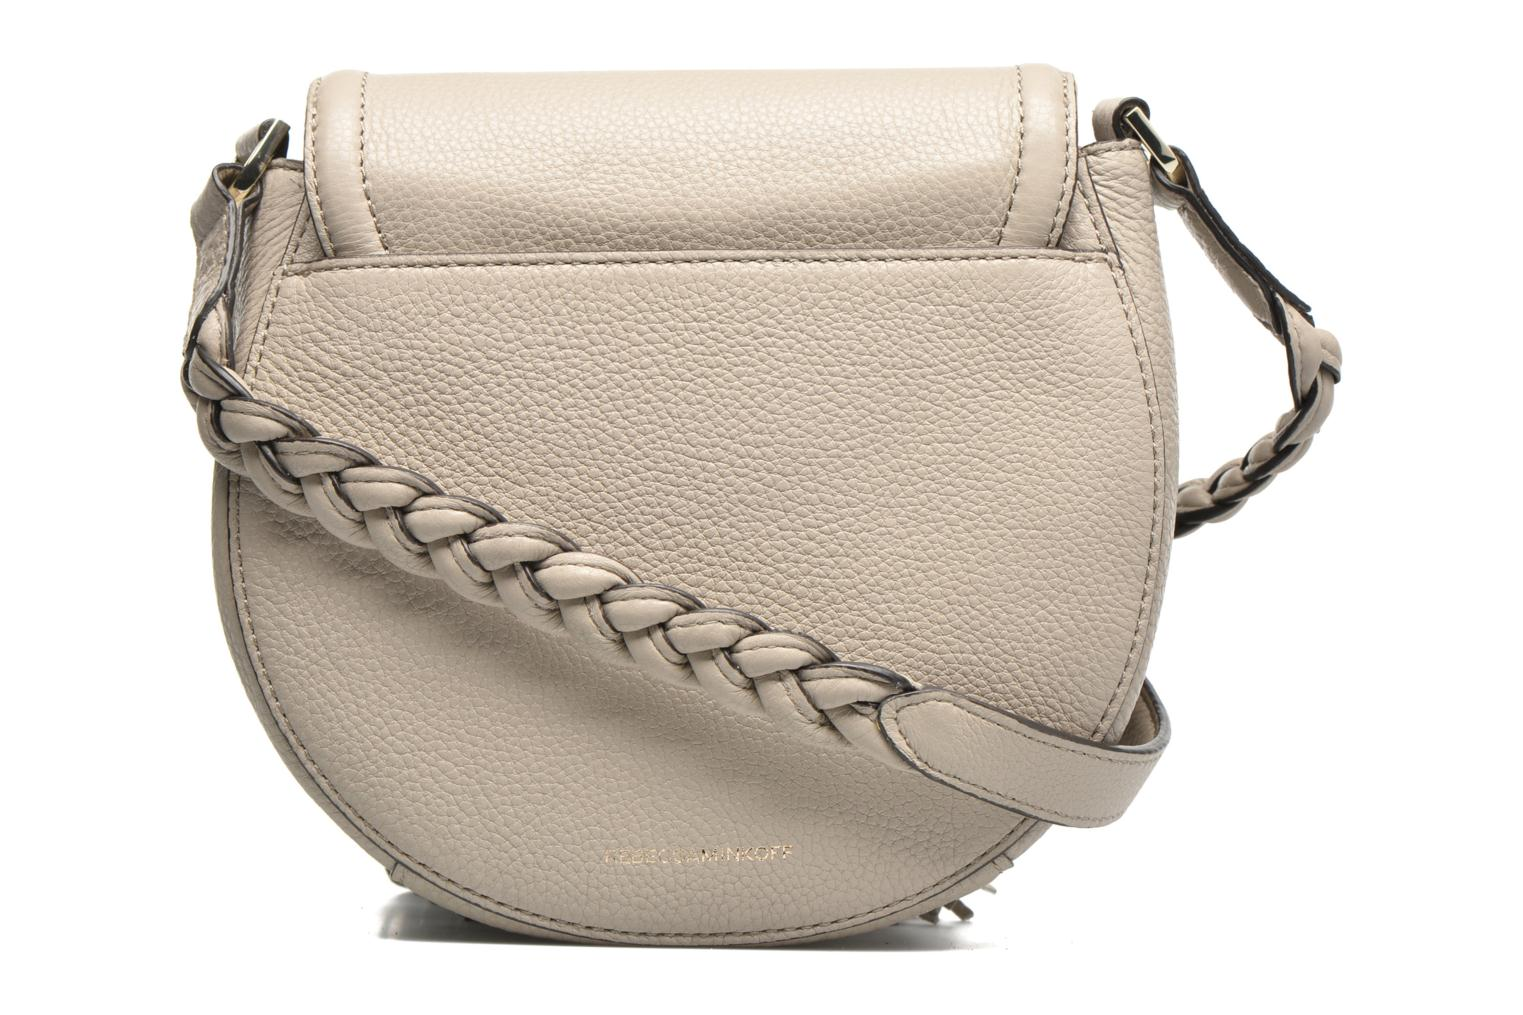 Isobel Light Gold Khaki crossbody Minkoff Rebecca 8BxqZUw